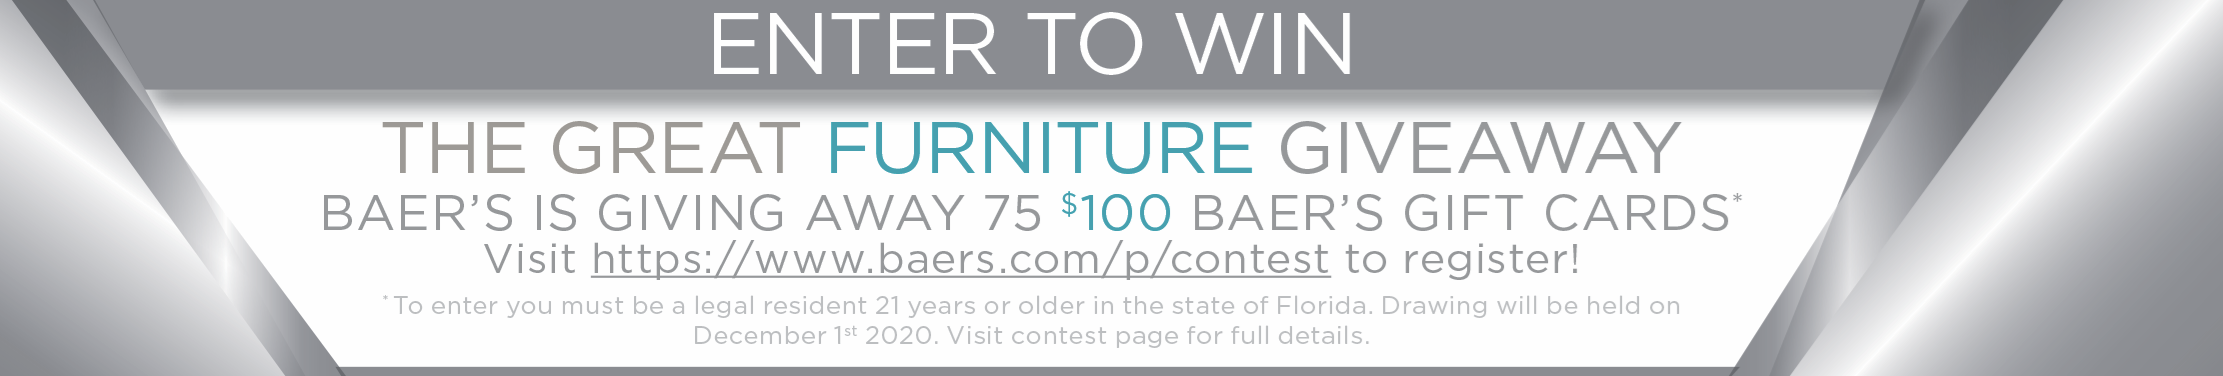 Great Furniture Giveaway